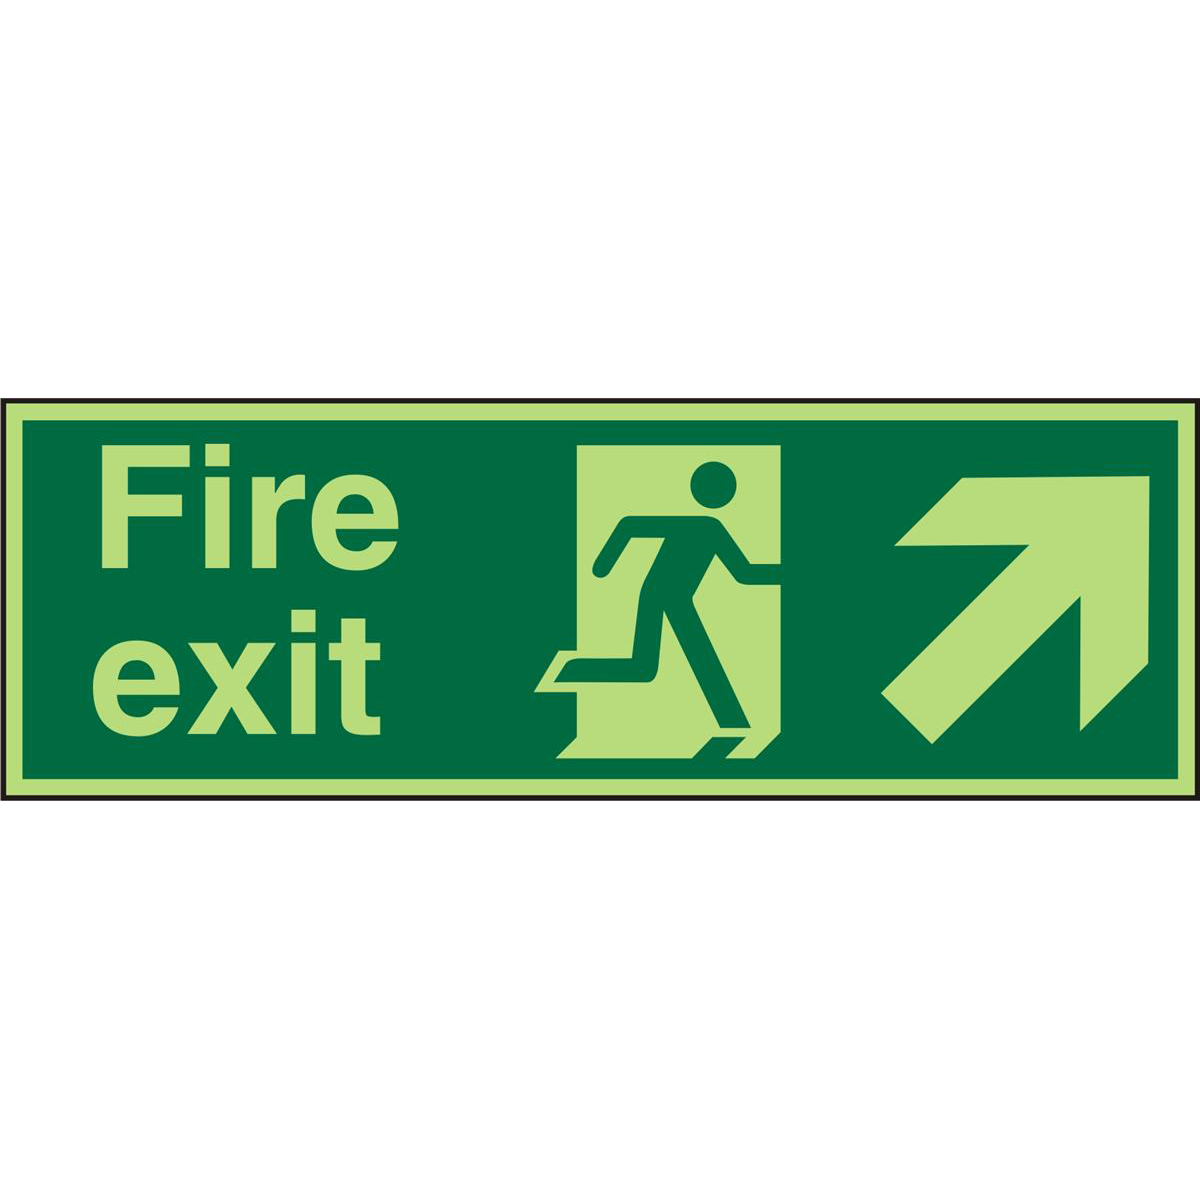 Photolum Sign 450x150 S/A FireExit Man Running Right&Arrow Ref PSP316SAV450x150 *Up to 10 Day Leadtime*